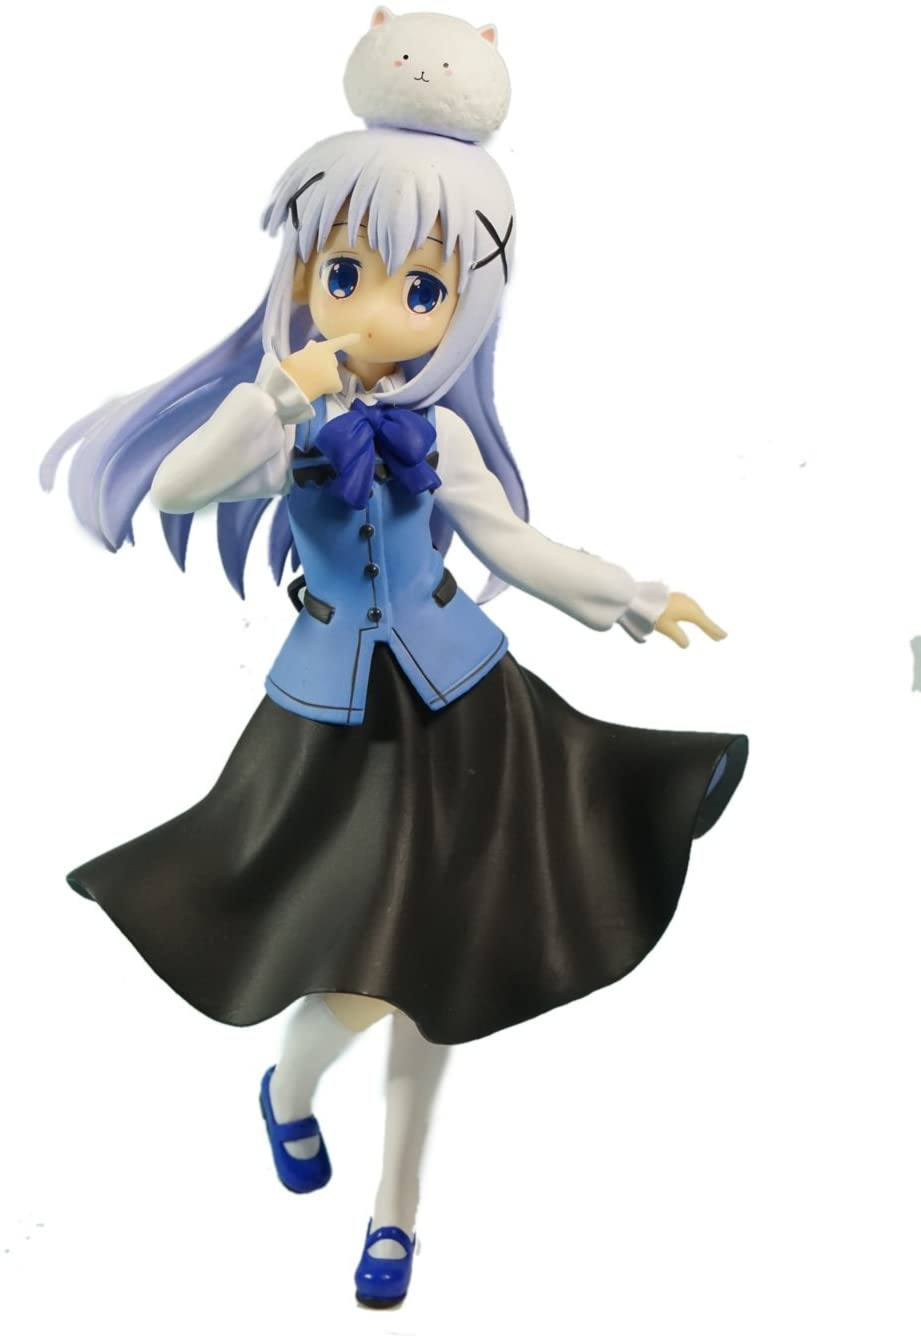 Chino, Chino Kafu Tea Time Special Figure, Is the order a rabbit?, Furyu